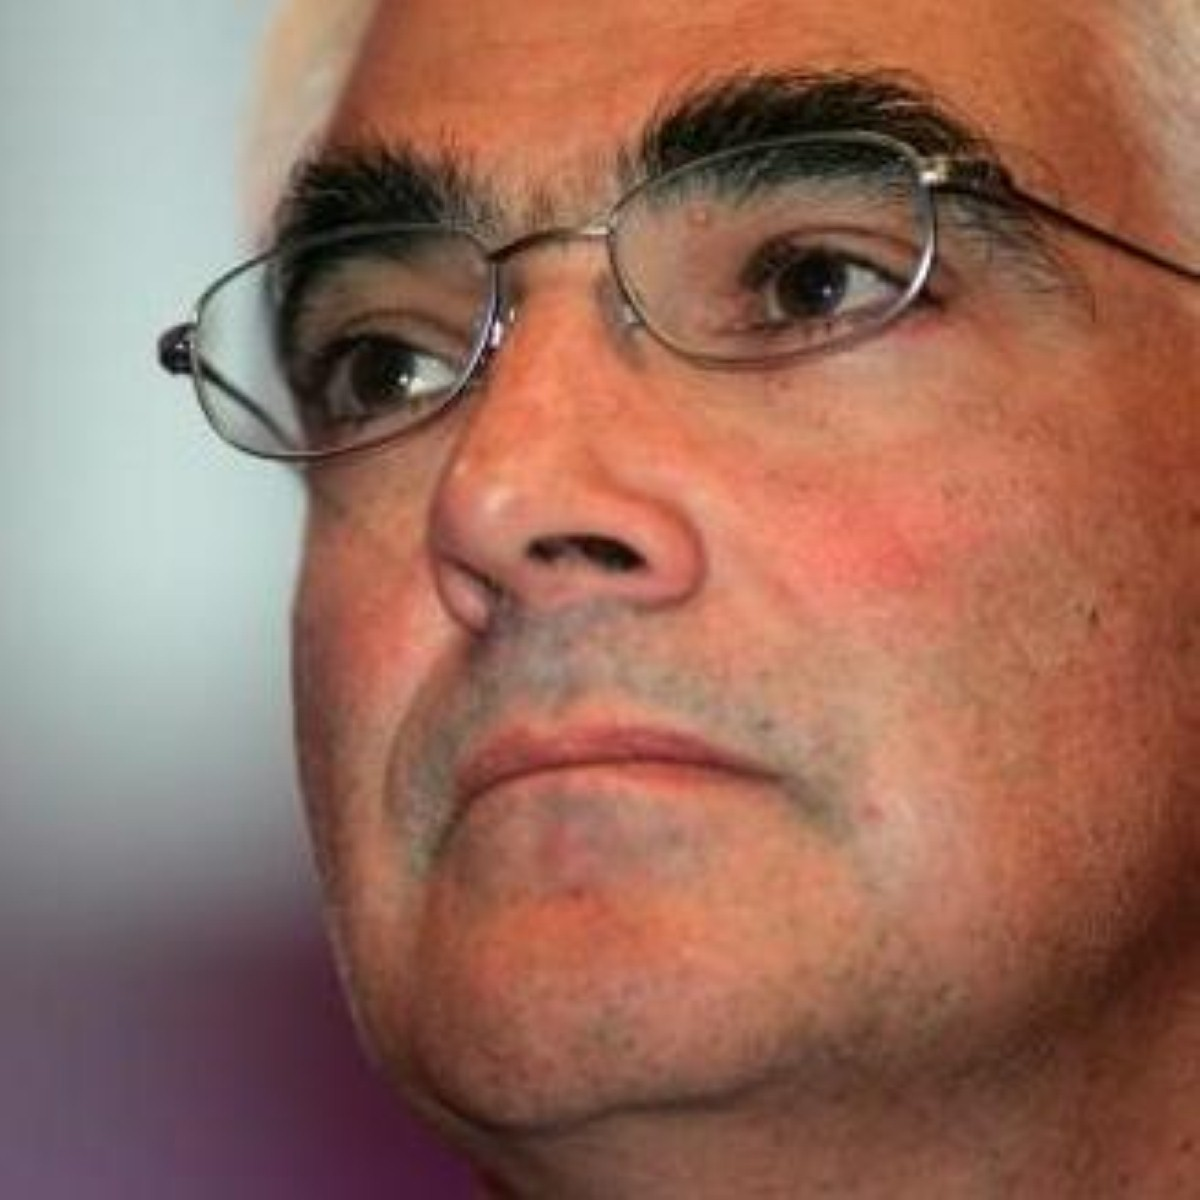 Darling will 'face down' green lobby